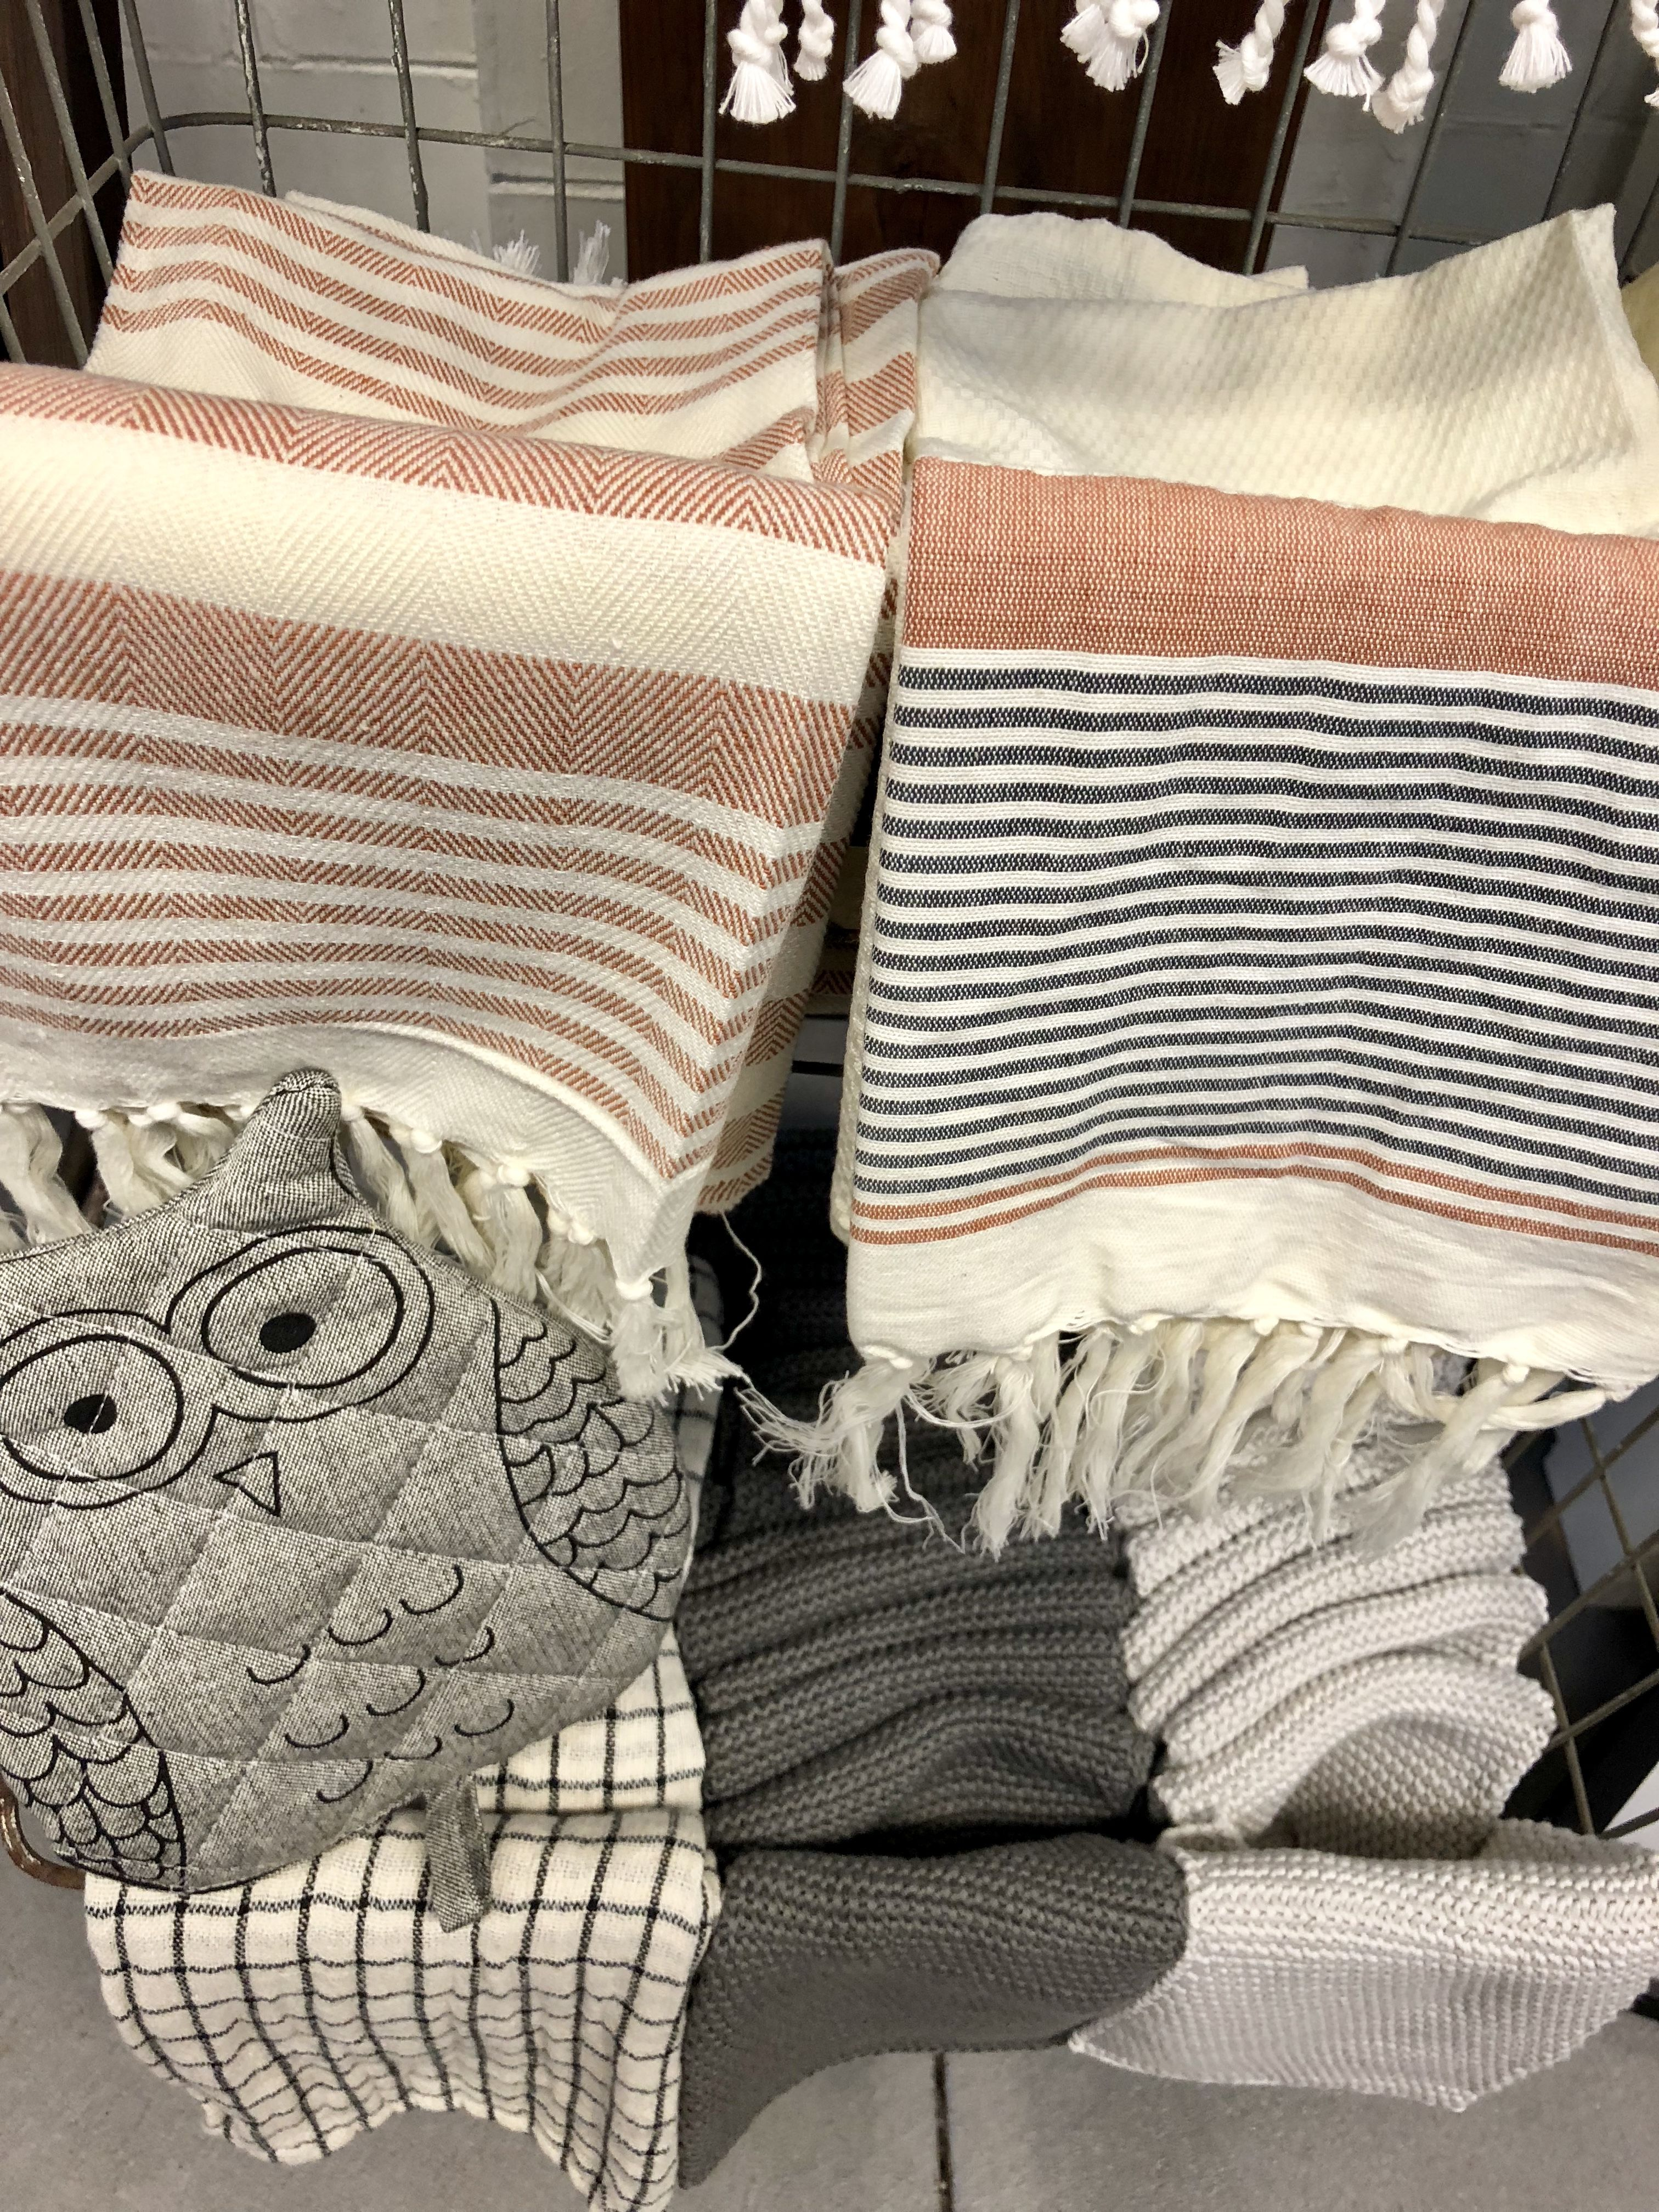 Kitchen Towels And Cloths Fine Linens For Your Home